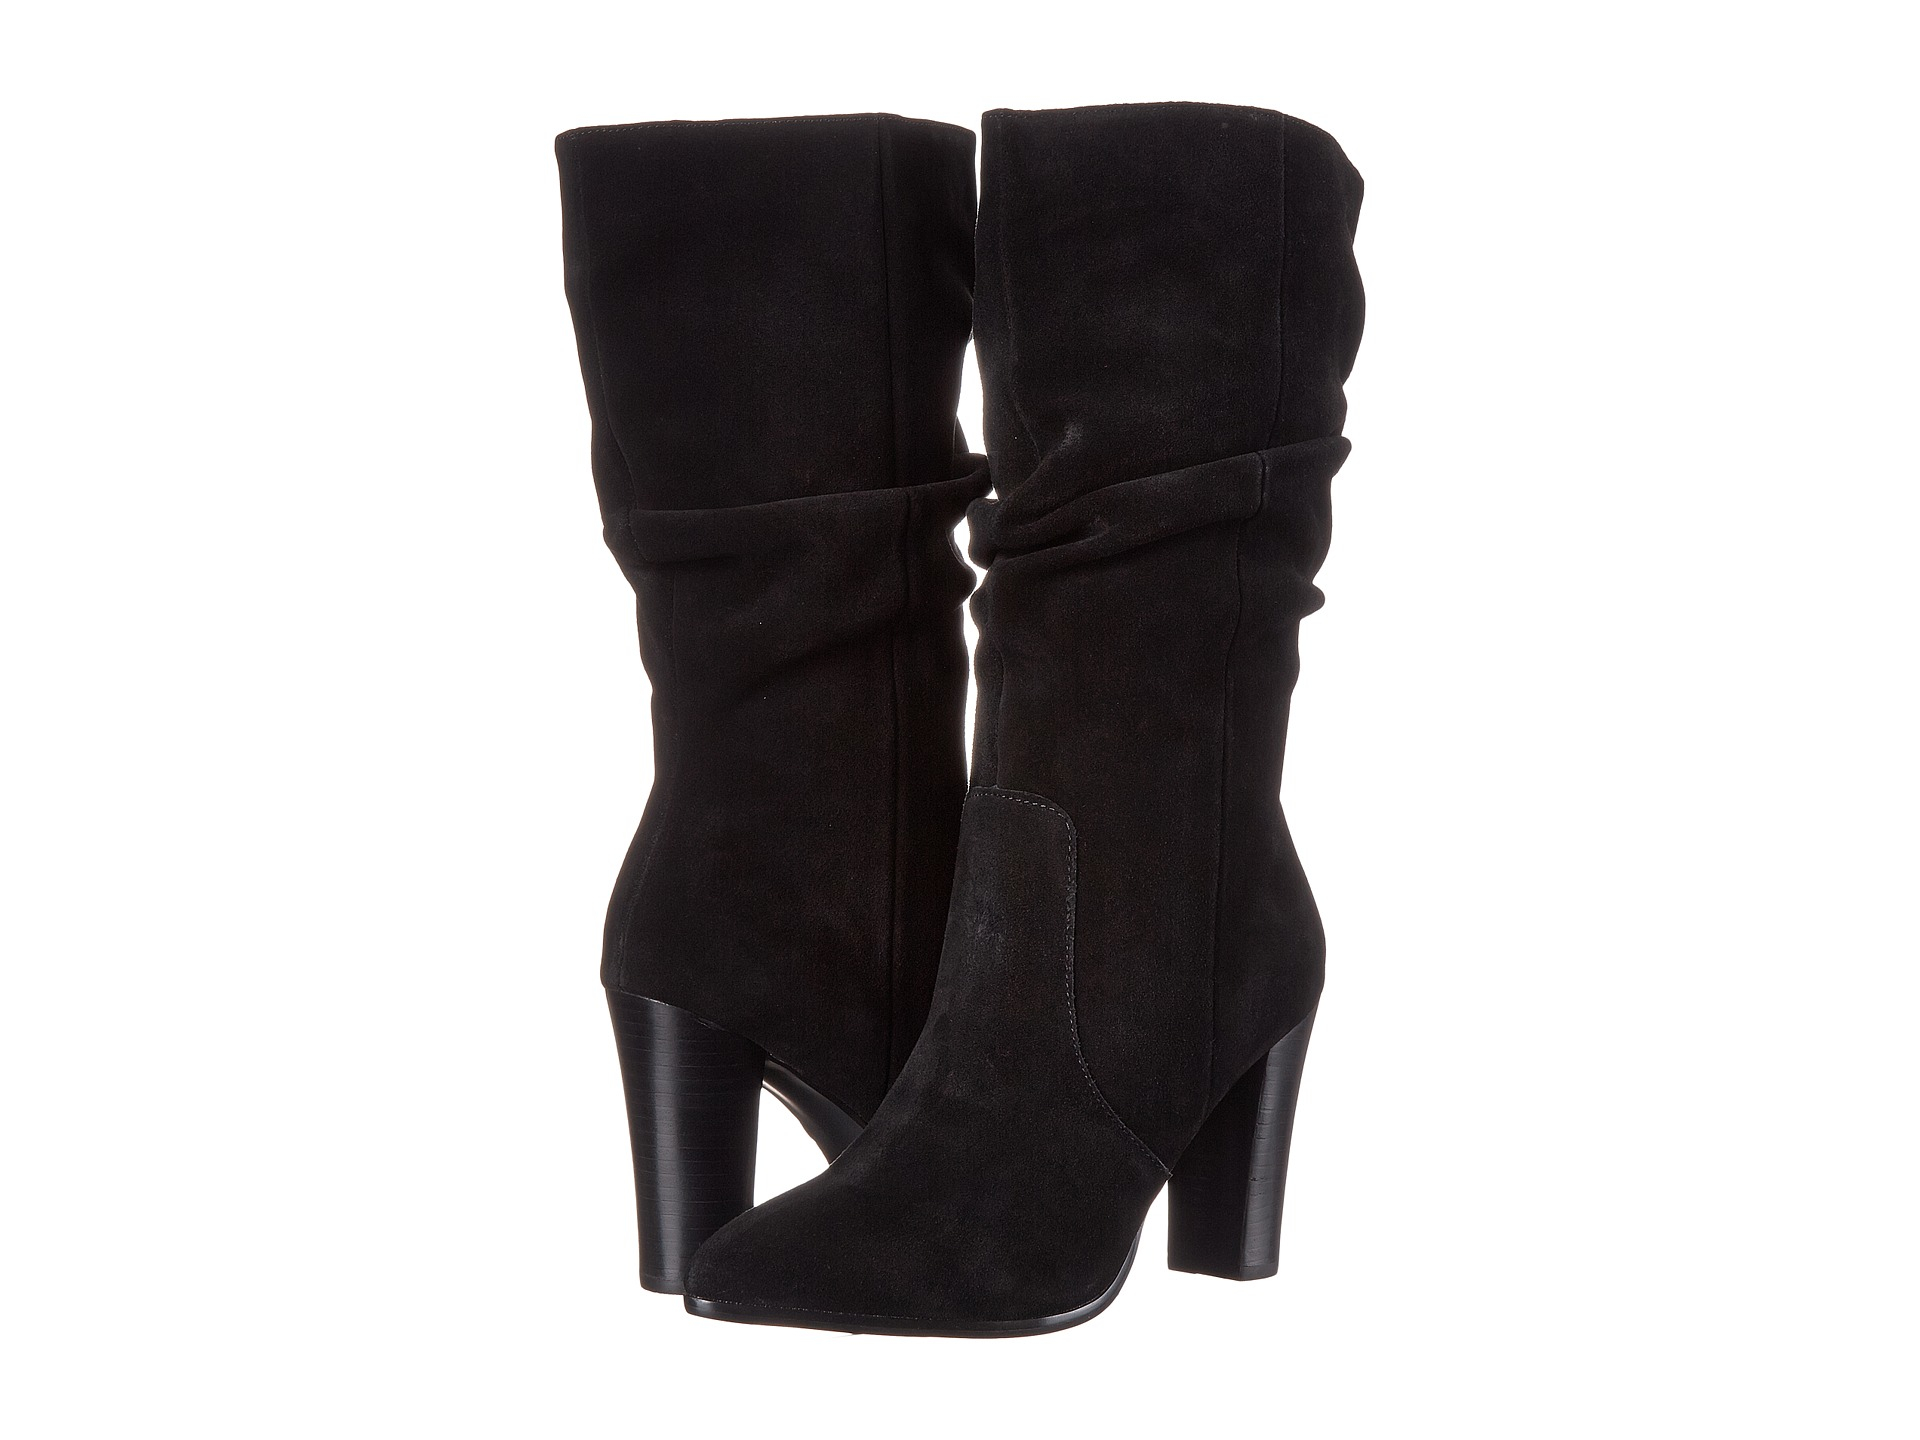 tahari alanna suede slouchy mid calf boots in black lyst